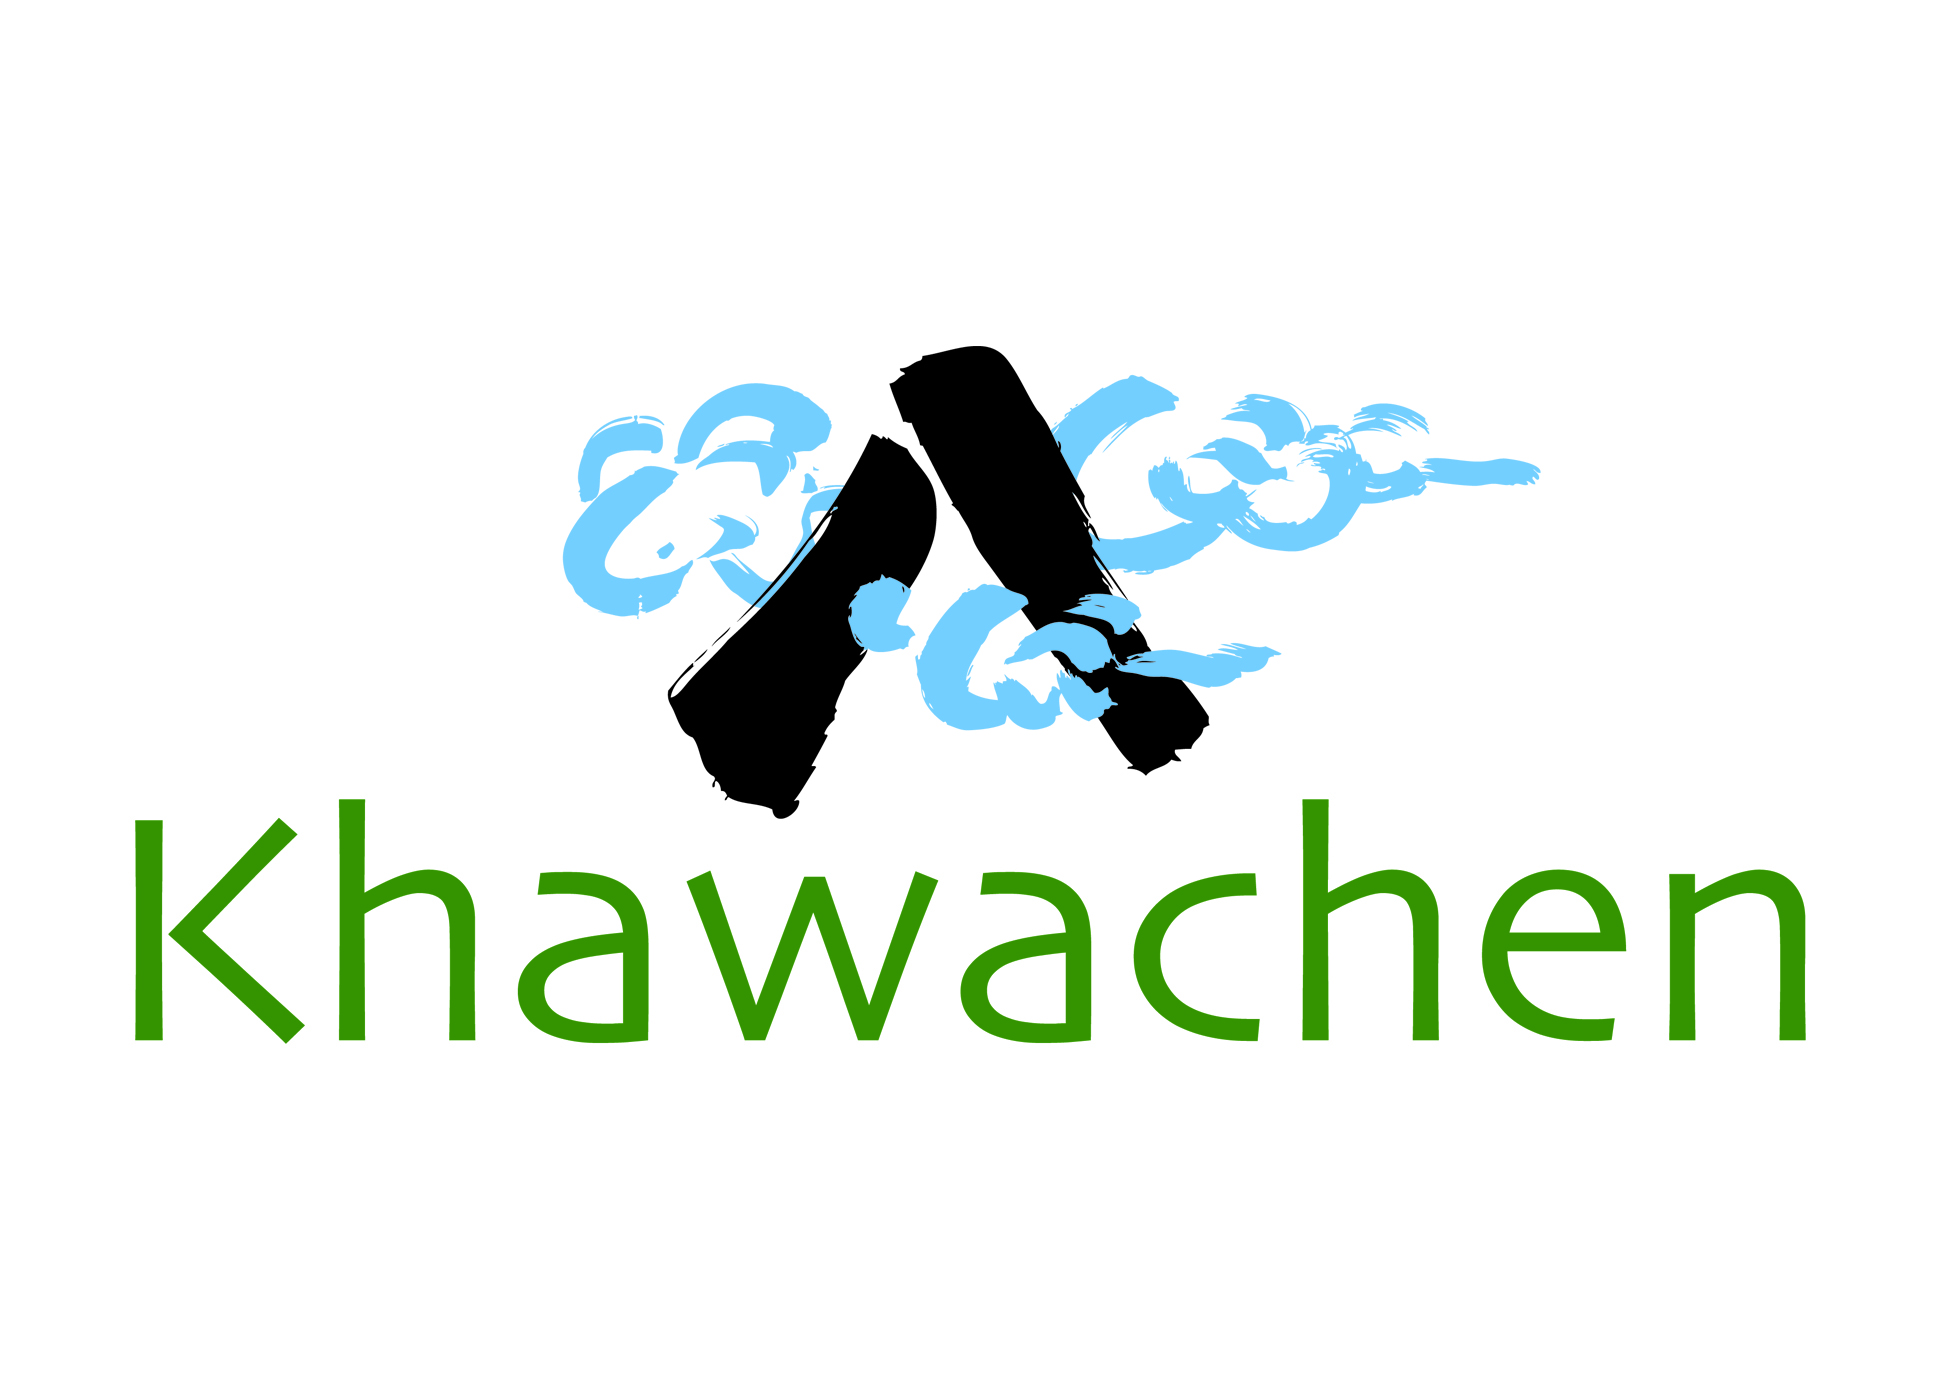 "From their website: ""More than 25 years ago, InnerAsia founded the Khawachen Arts and Craft Center in Lhasa to revitalize Tibetan rug weaving."" We created this logo for their Hanover, New Hampshire, store, which sells handcrafted rugs and other extraordinary treasures from Tibet."